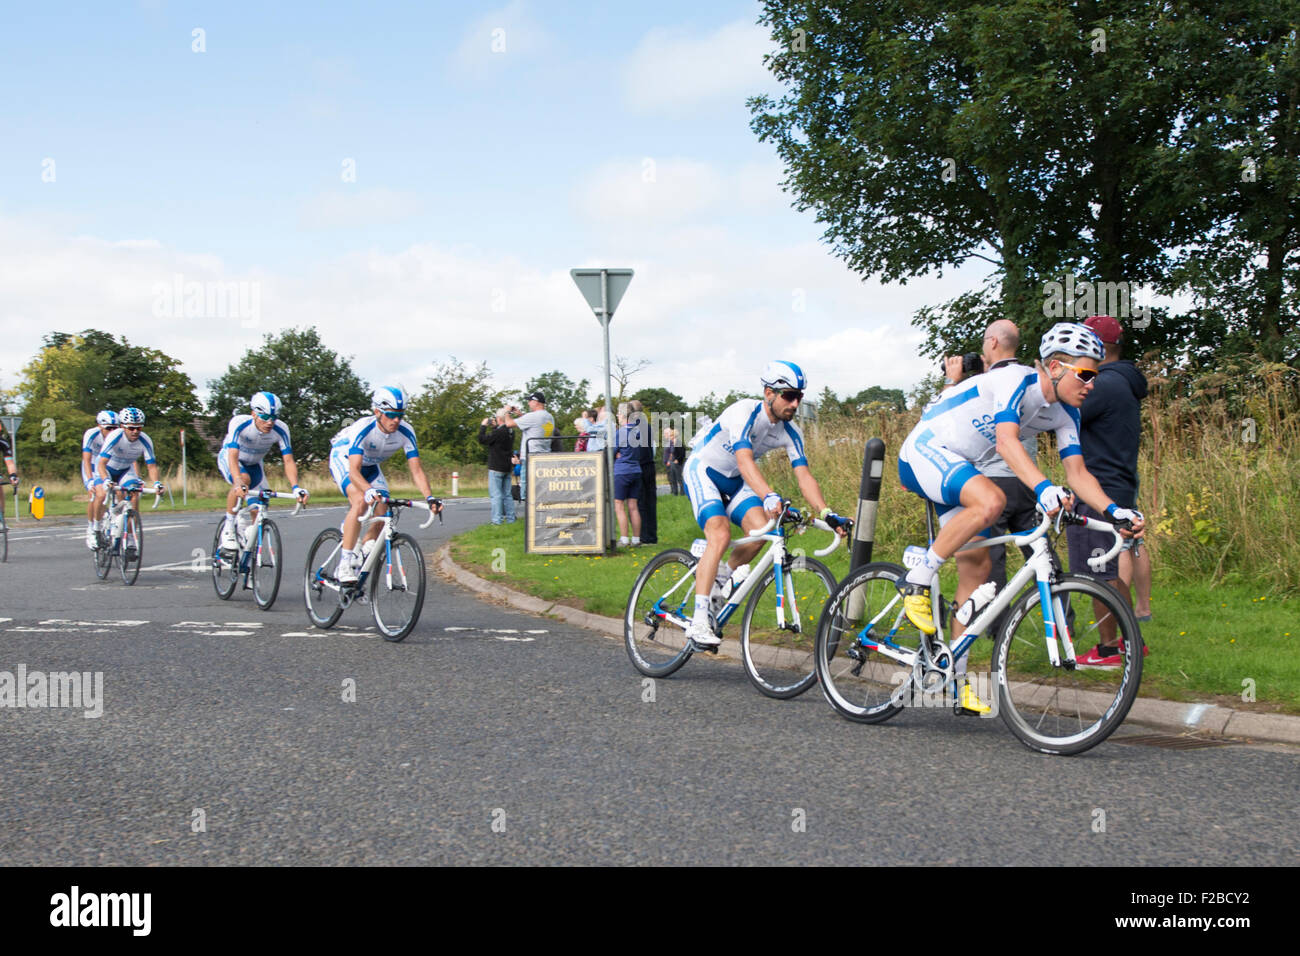 Cyclists from Team Novo Nordisk compete in stage 3 of the Aviva Tour of Britain between Cockermouth & Kelso, - Stock Image